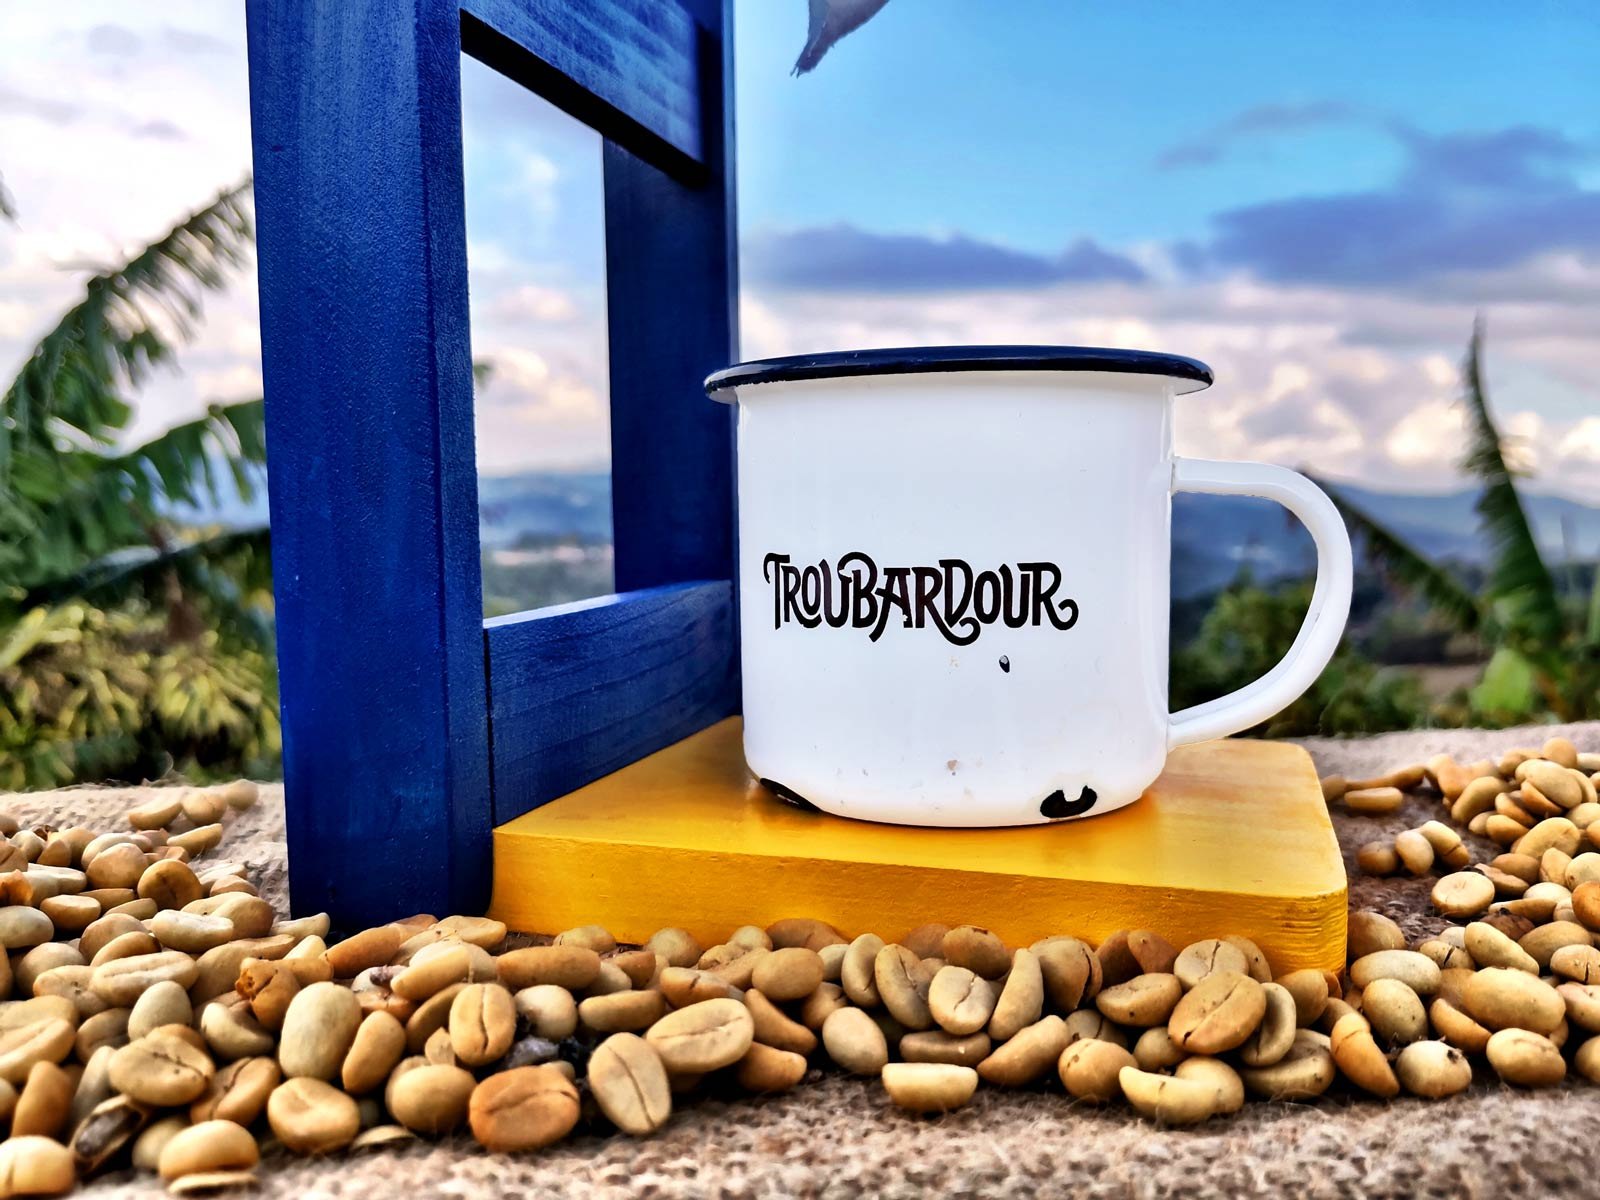 Troubardour Coffee